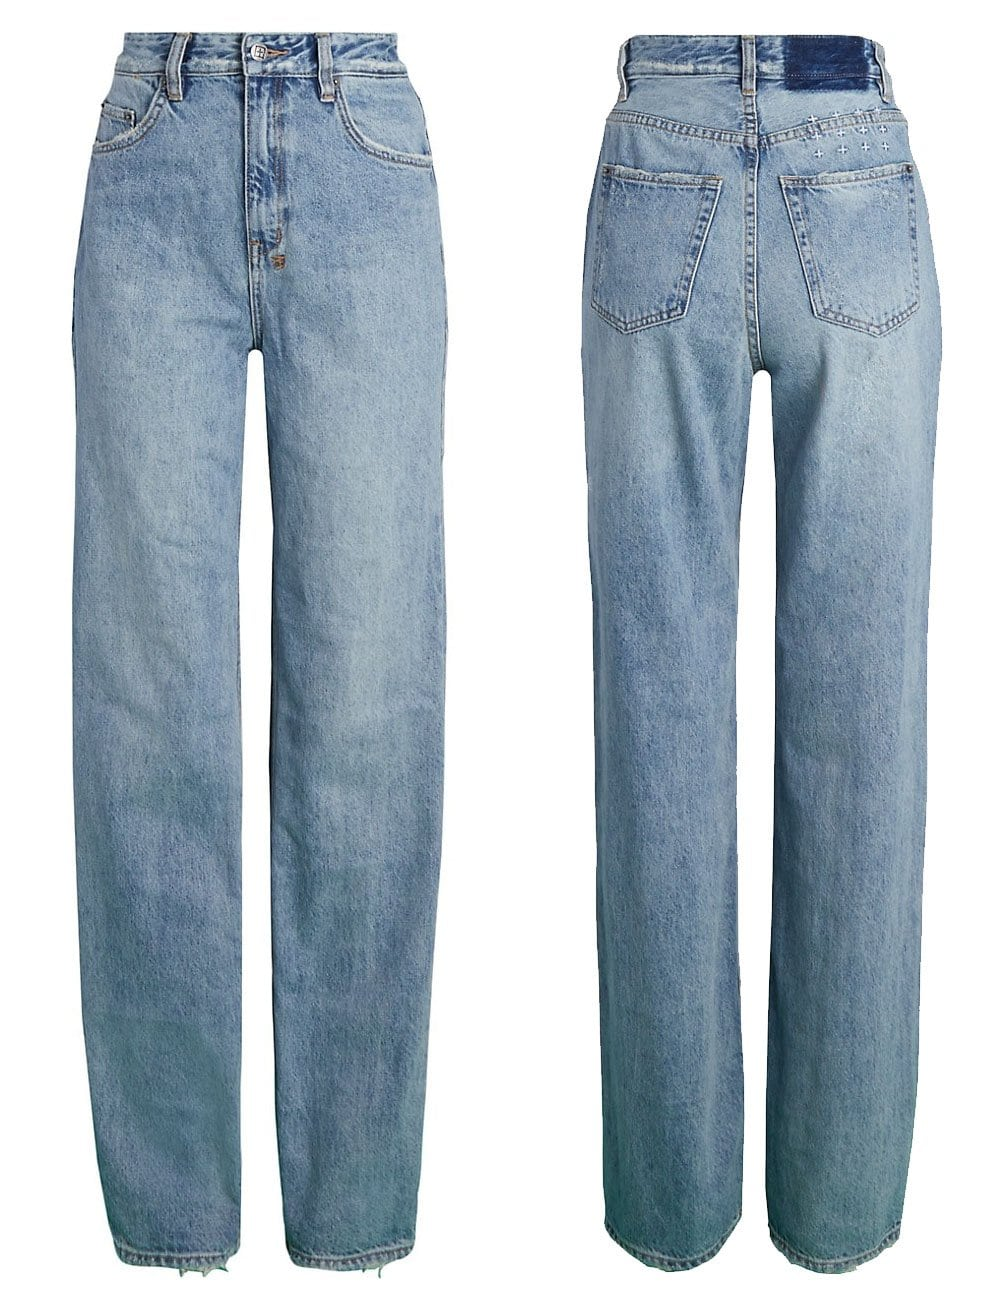 The Playback Karma is a '90s-inspired relaxed straight-leg denim jean with an ultra high waist and five-pocket